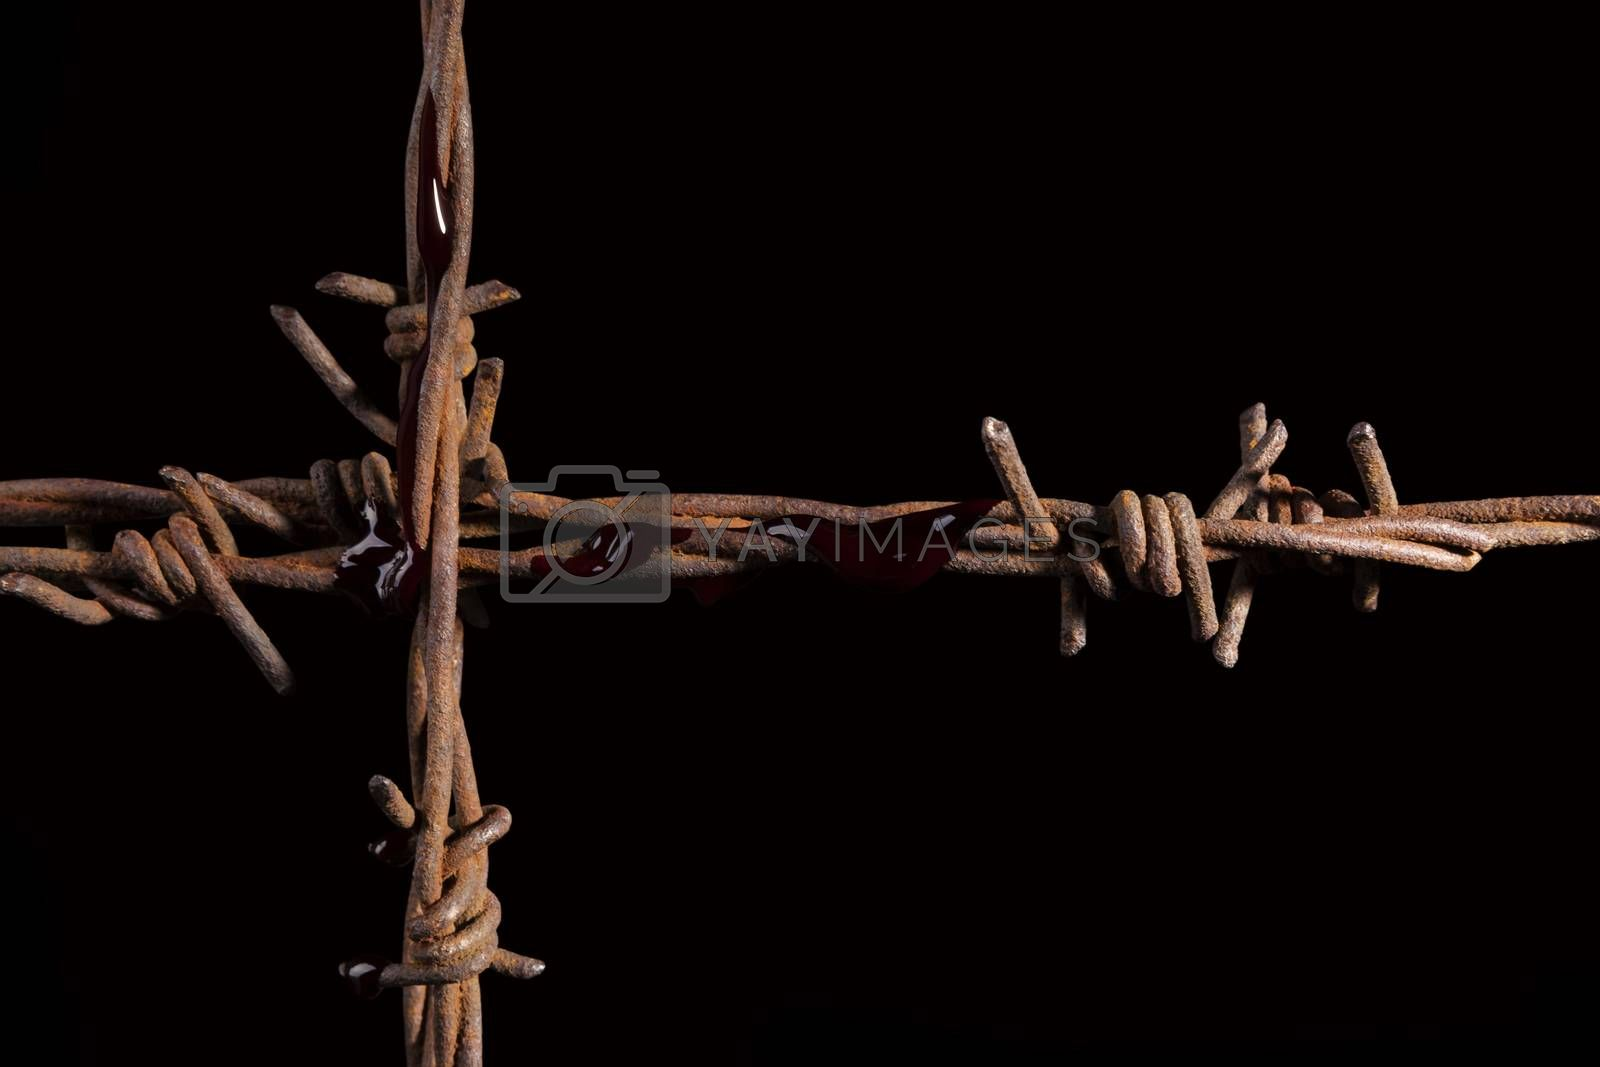 Rusty barb wire cross isolated on black background. Religious wars.